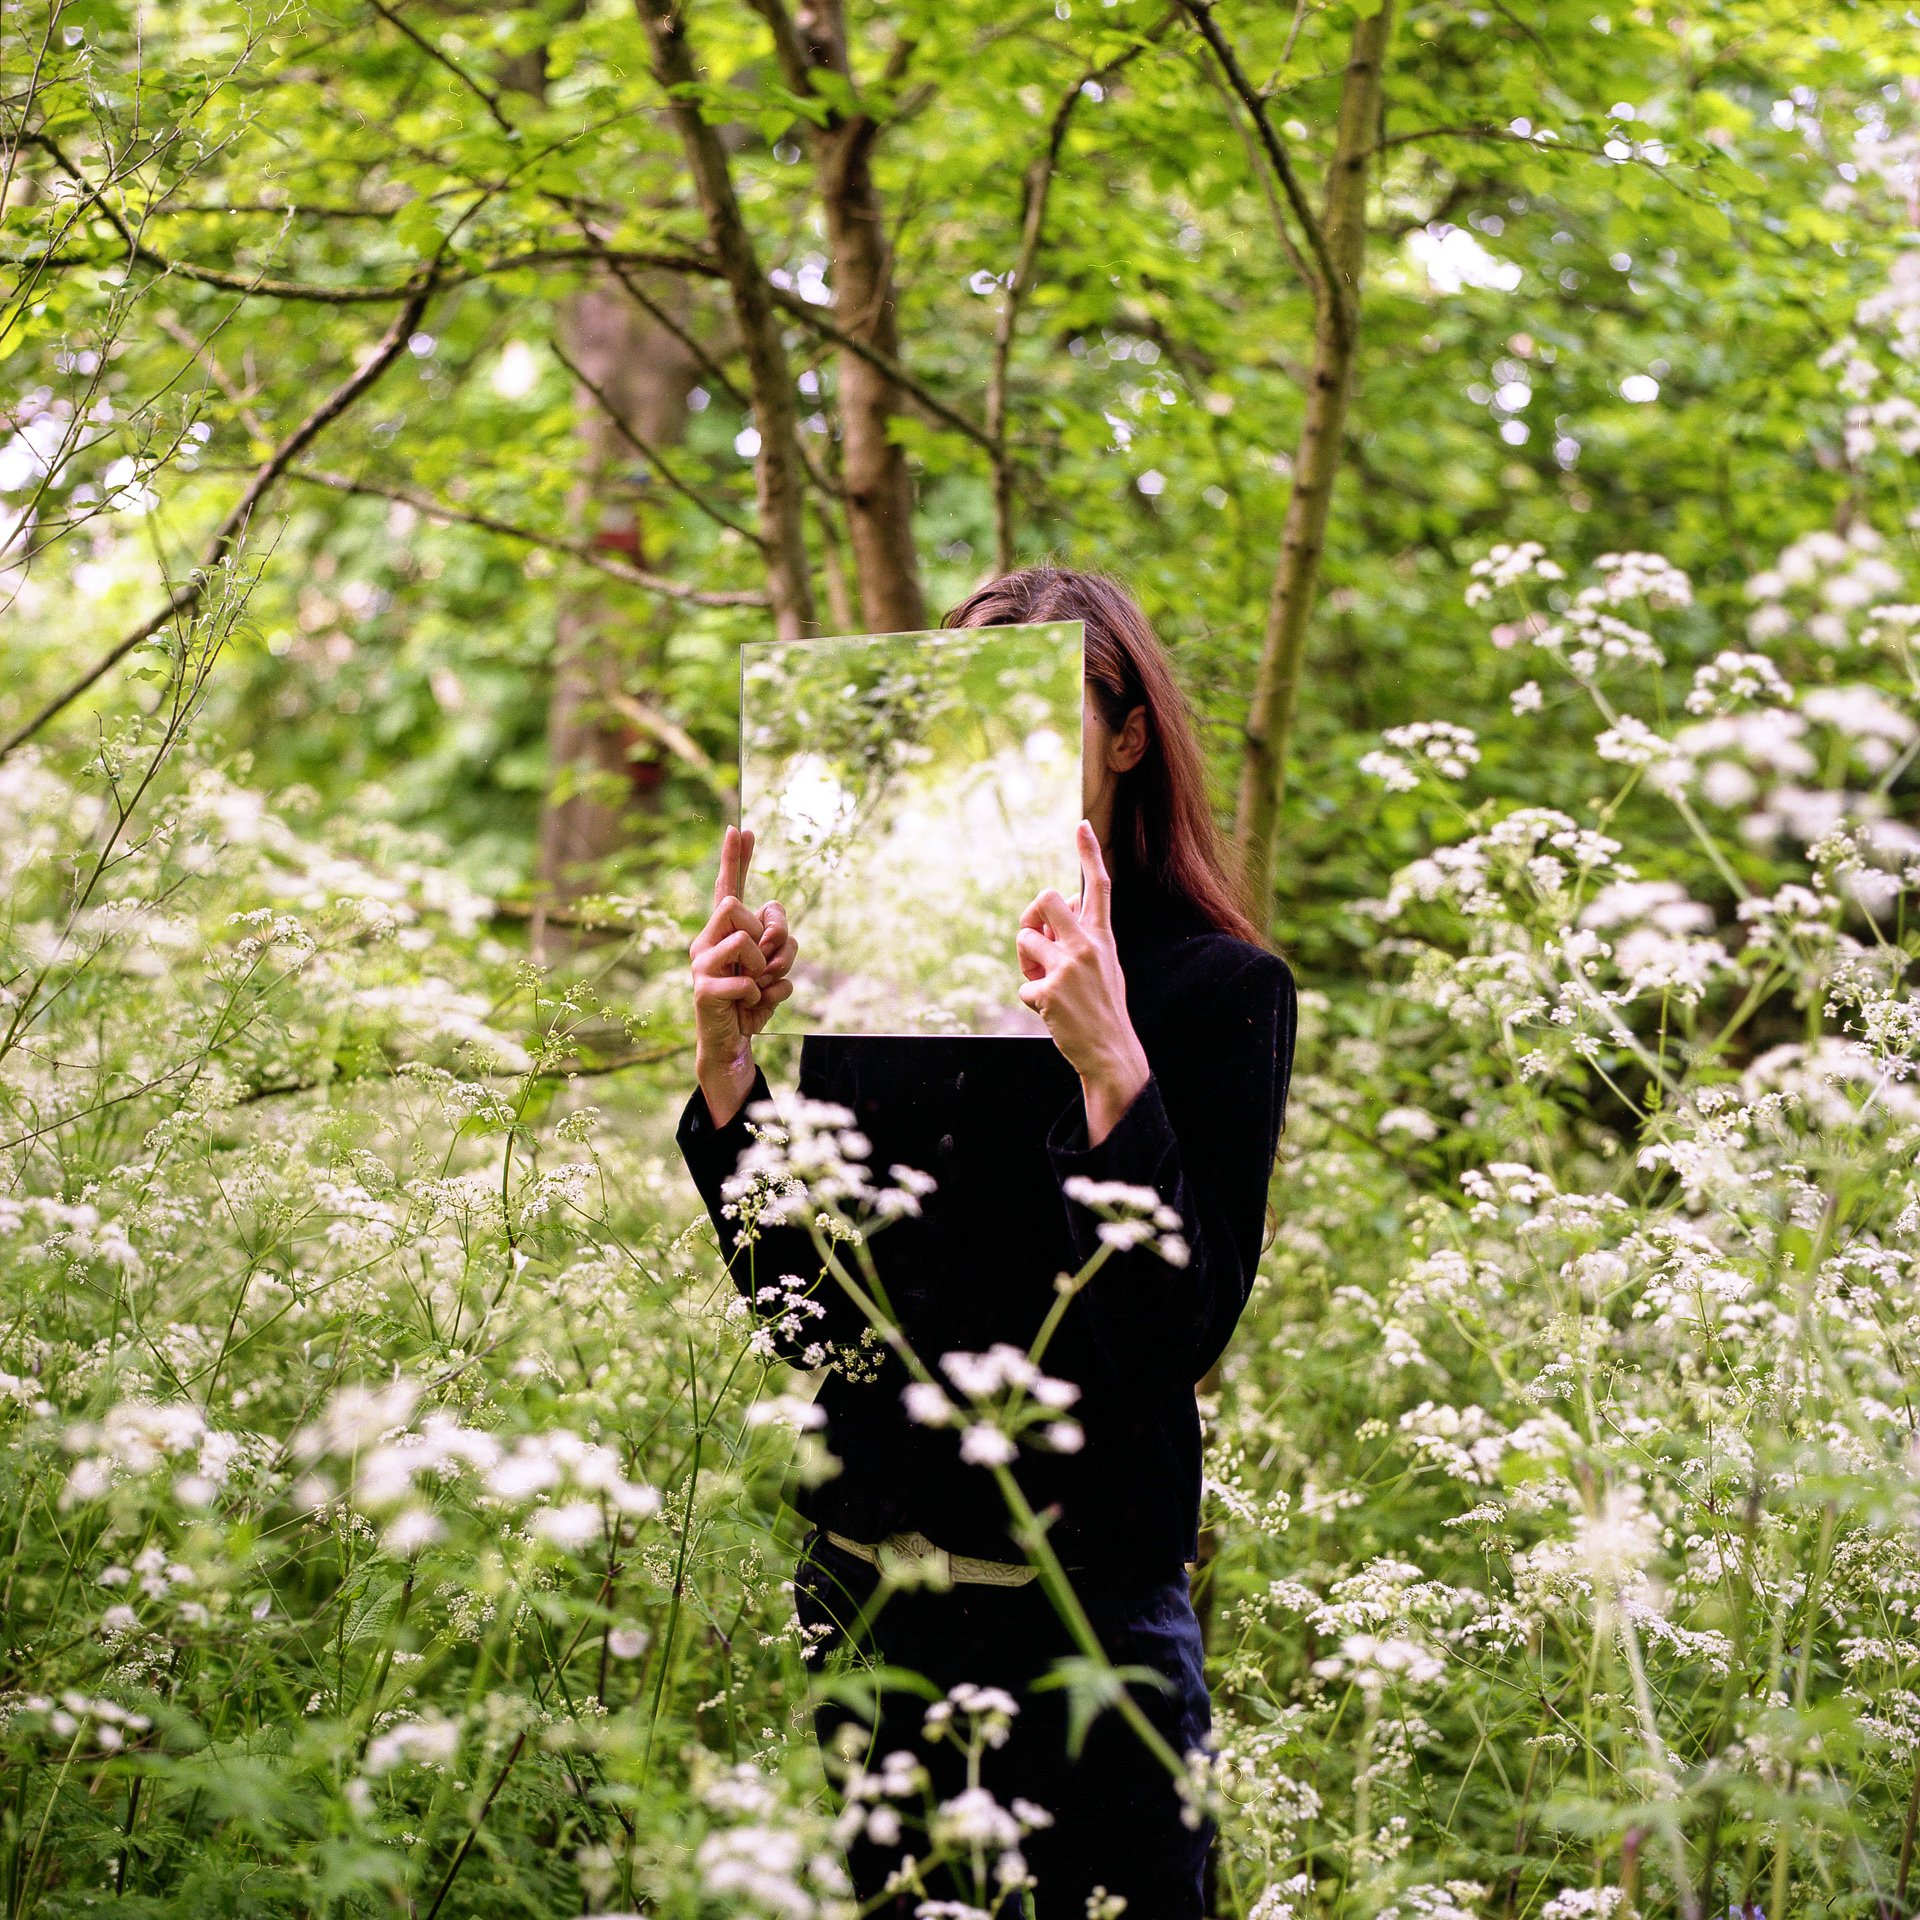 Guna stood in the middle of a park holding a square mirror in front of her face, that reflects the plant life around her, surrounded by blossoming plants with white flowers and trees in the background